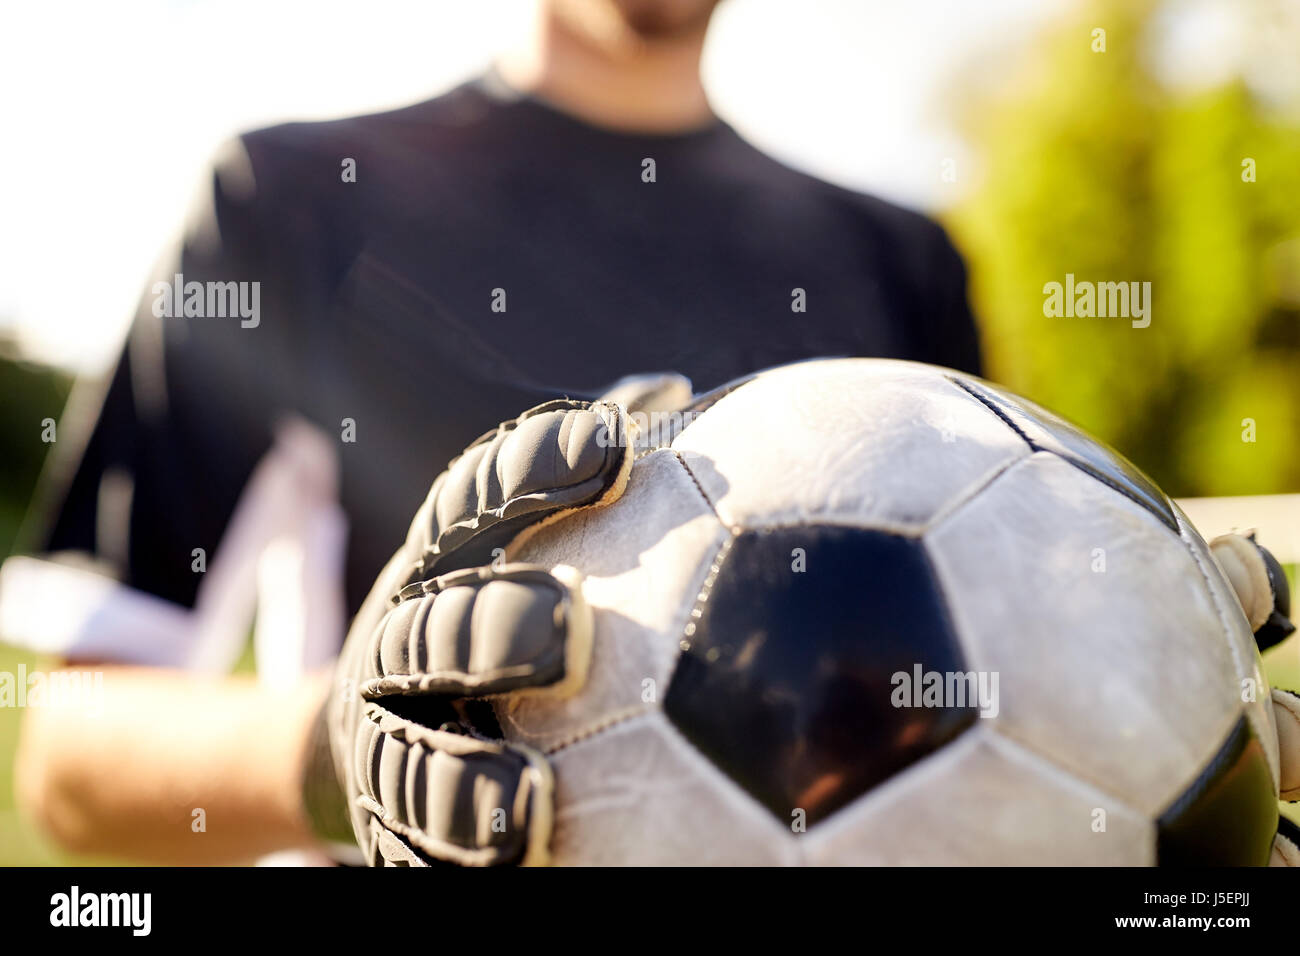 close up of goalkeeper with ball playing football - Stock Image